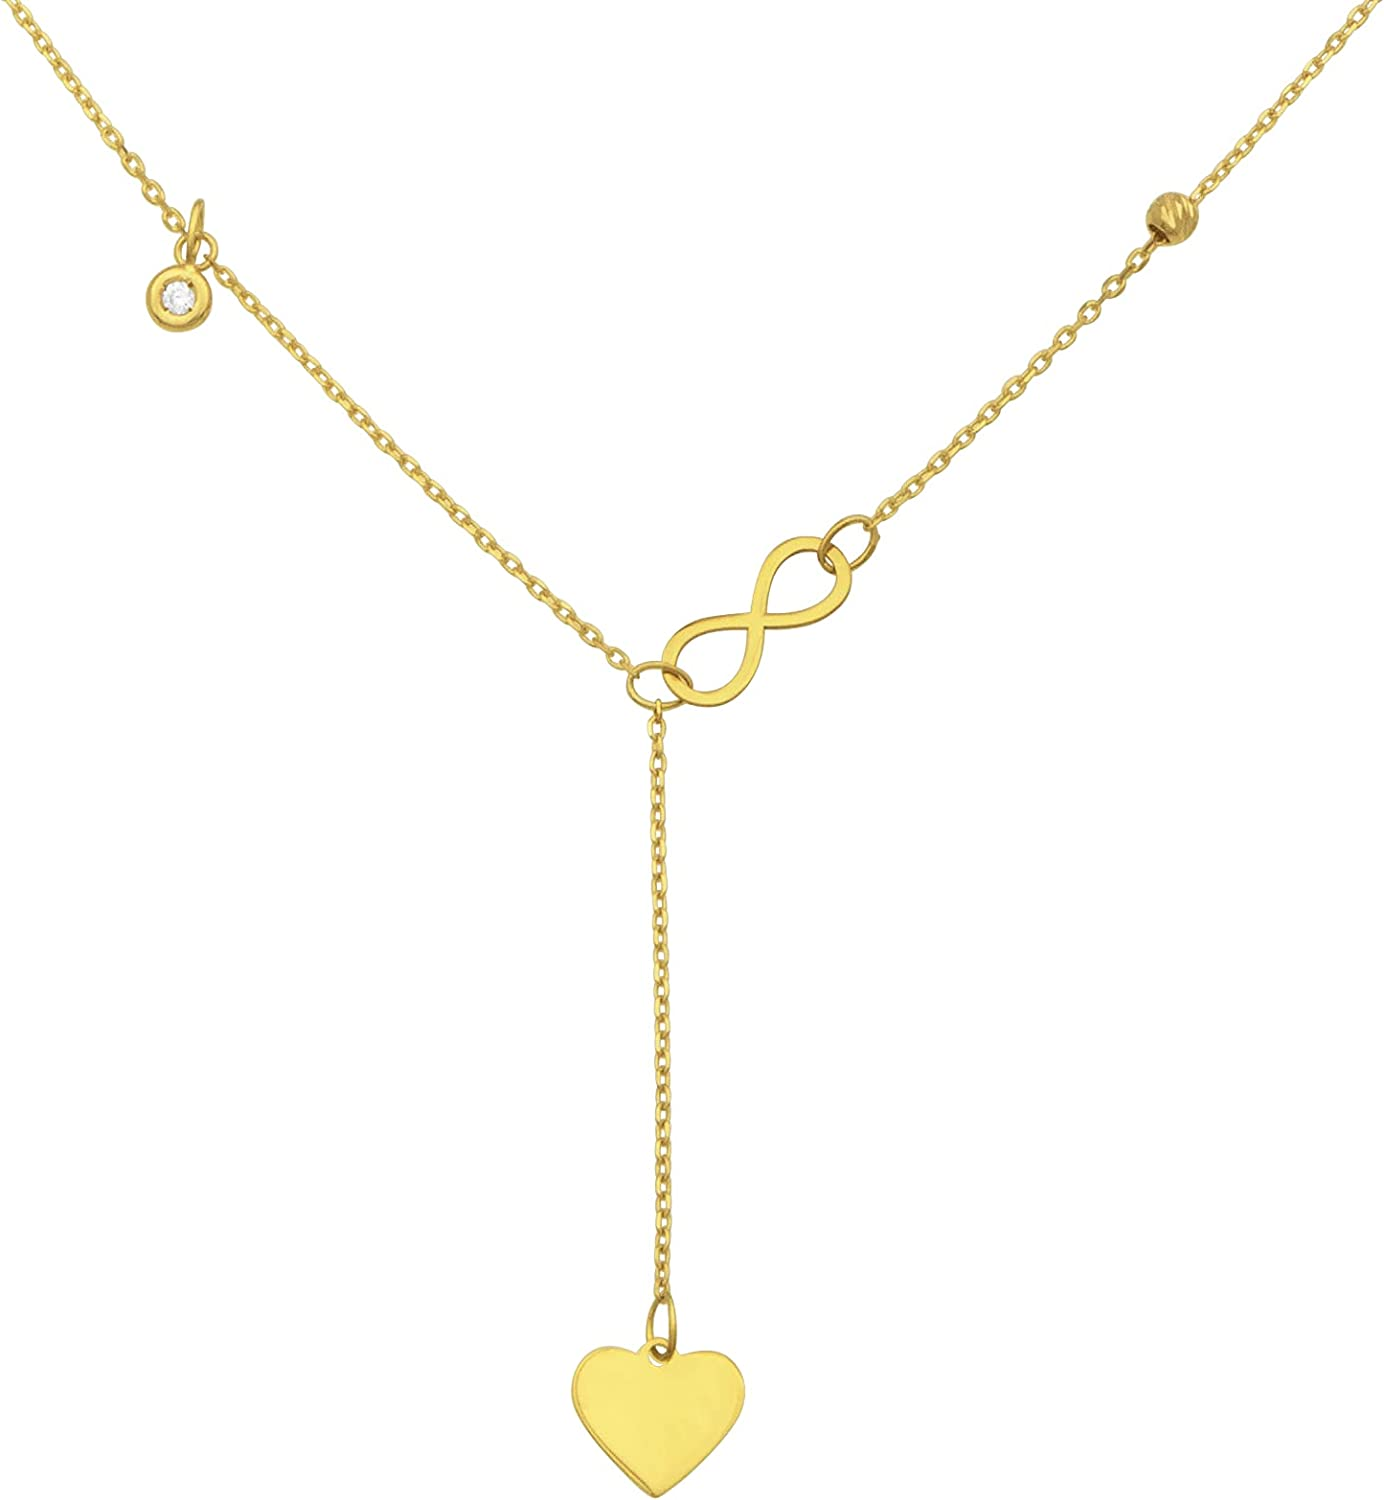 """14k Italian Solid Yellow Gold """"Love You Forever"""" Infinity Heart Pendant Delicate Lariat Y Drop Necklace with 0.02 ct Diamond, Adjustable 16"""" or 18"""""""